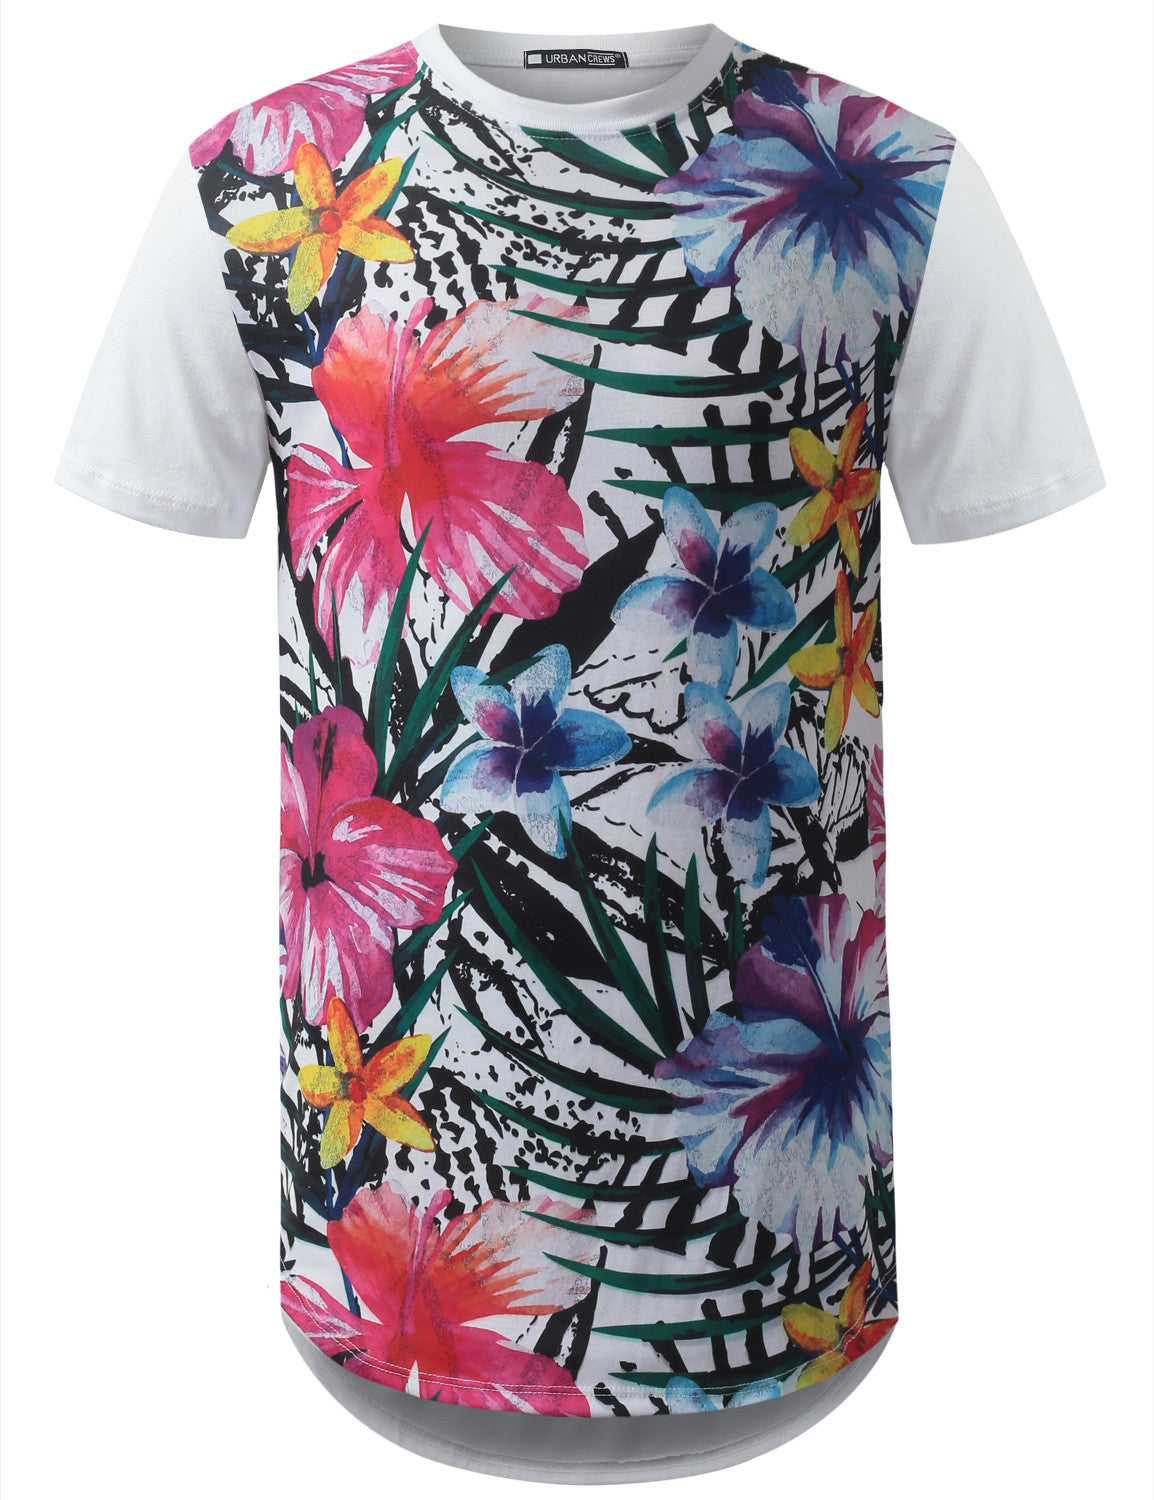 WHITE Tropical Floral Longline Crewneck Tshirts- URBANCREWS